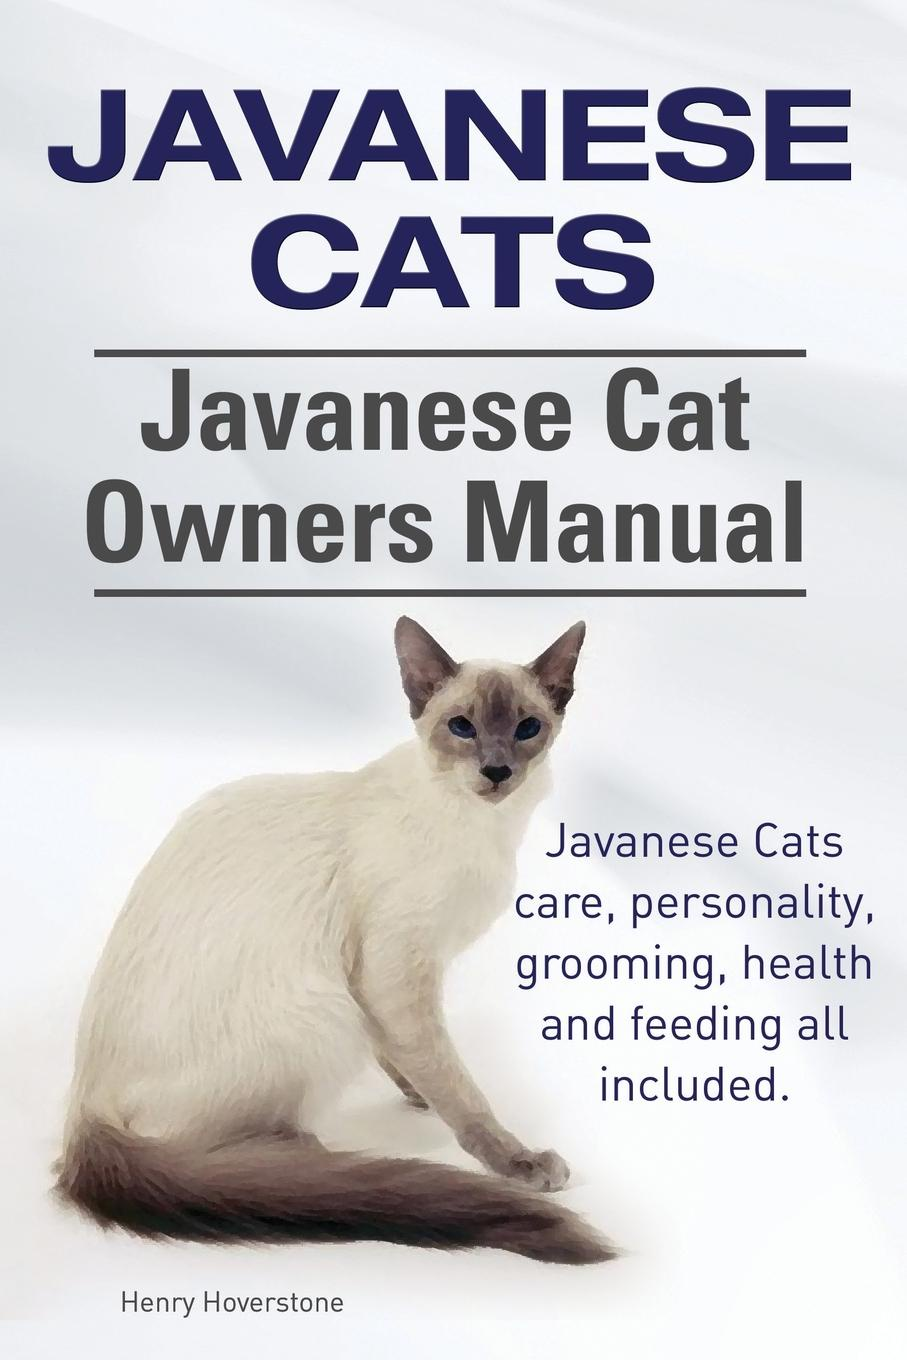 Henry Hoverstone Javanese Cats. Javanese Cat Owners Manual. Javanese Cats care, personality, grooming, health and feeding all included. the cat empire canberra